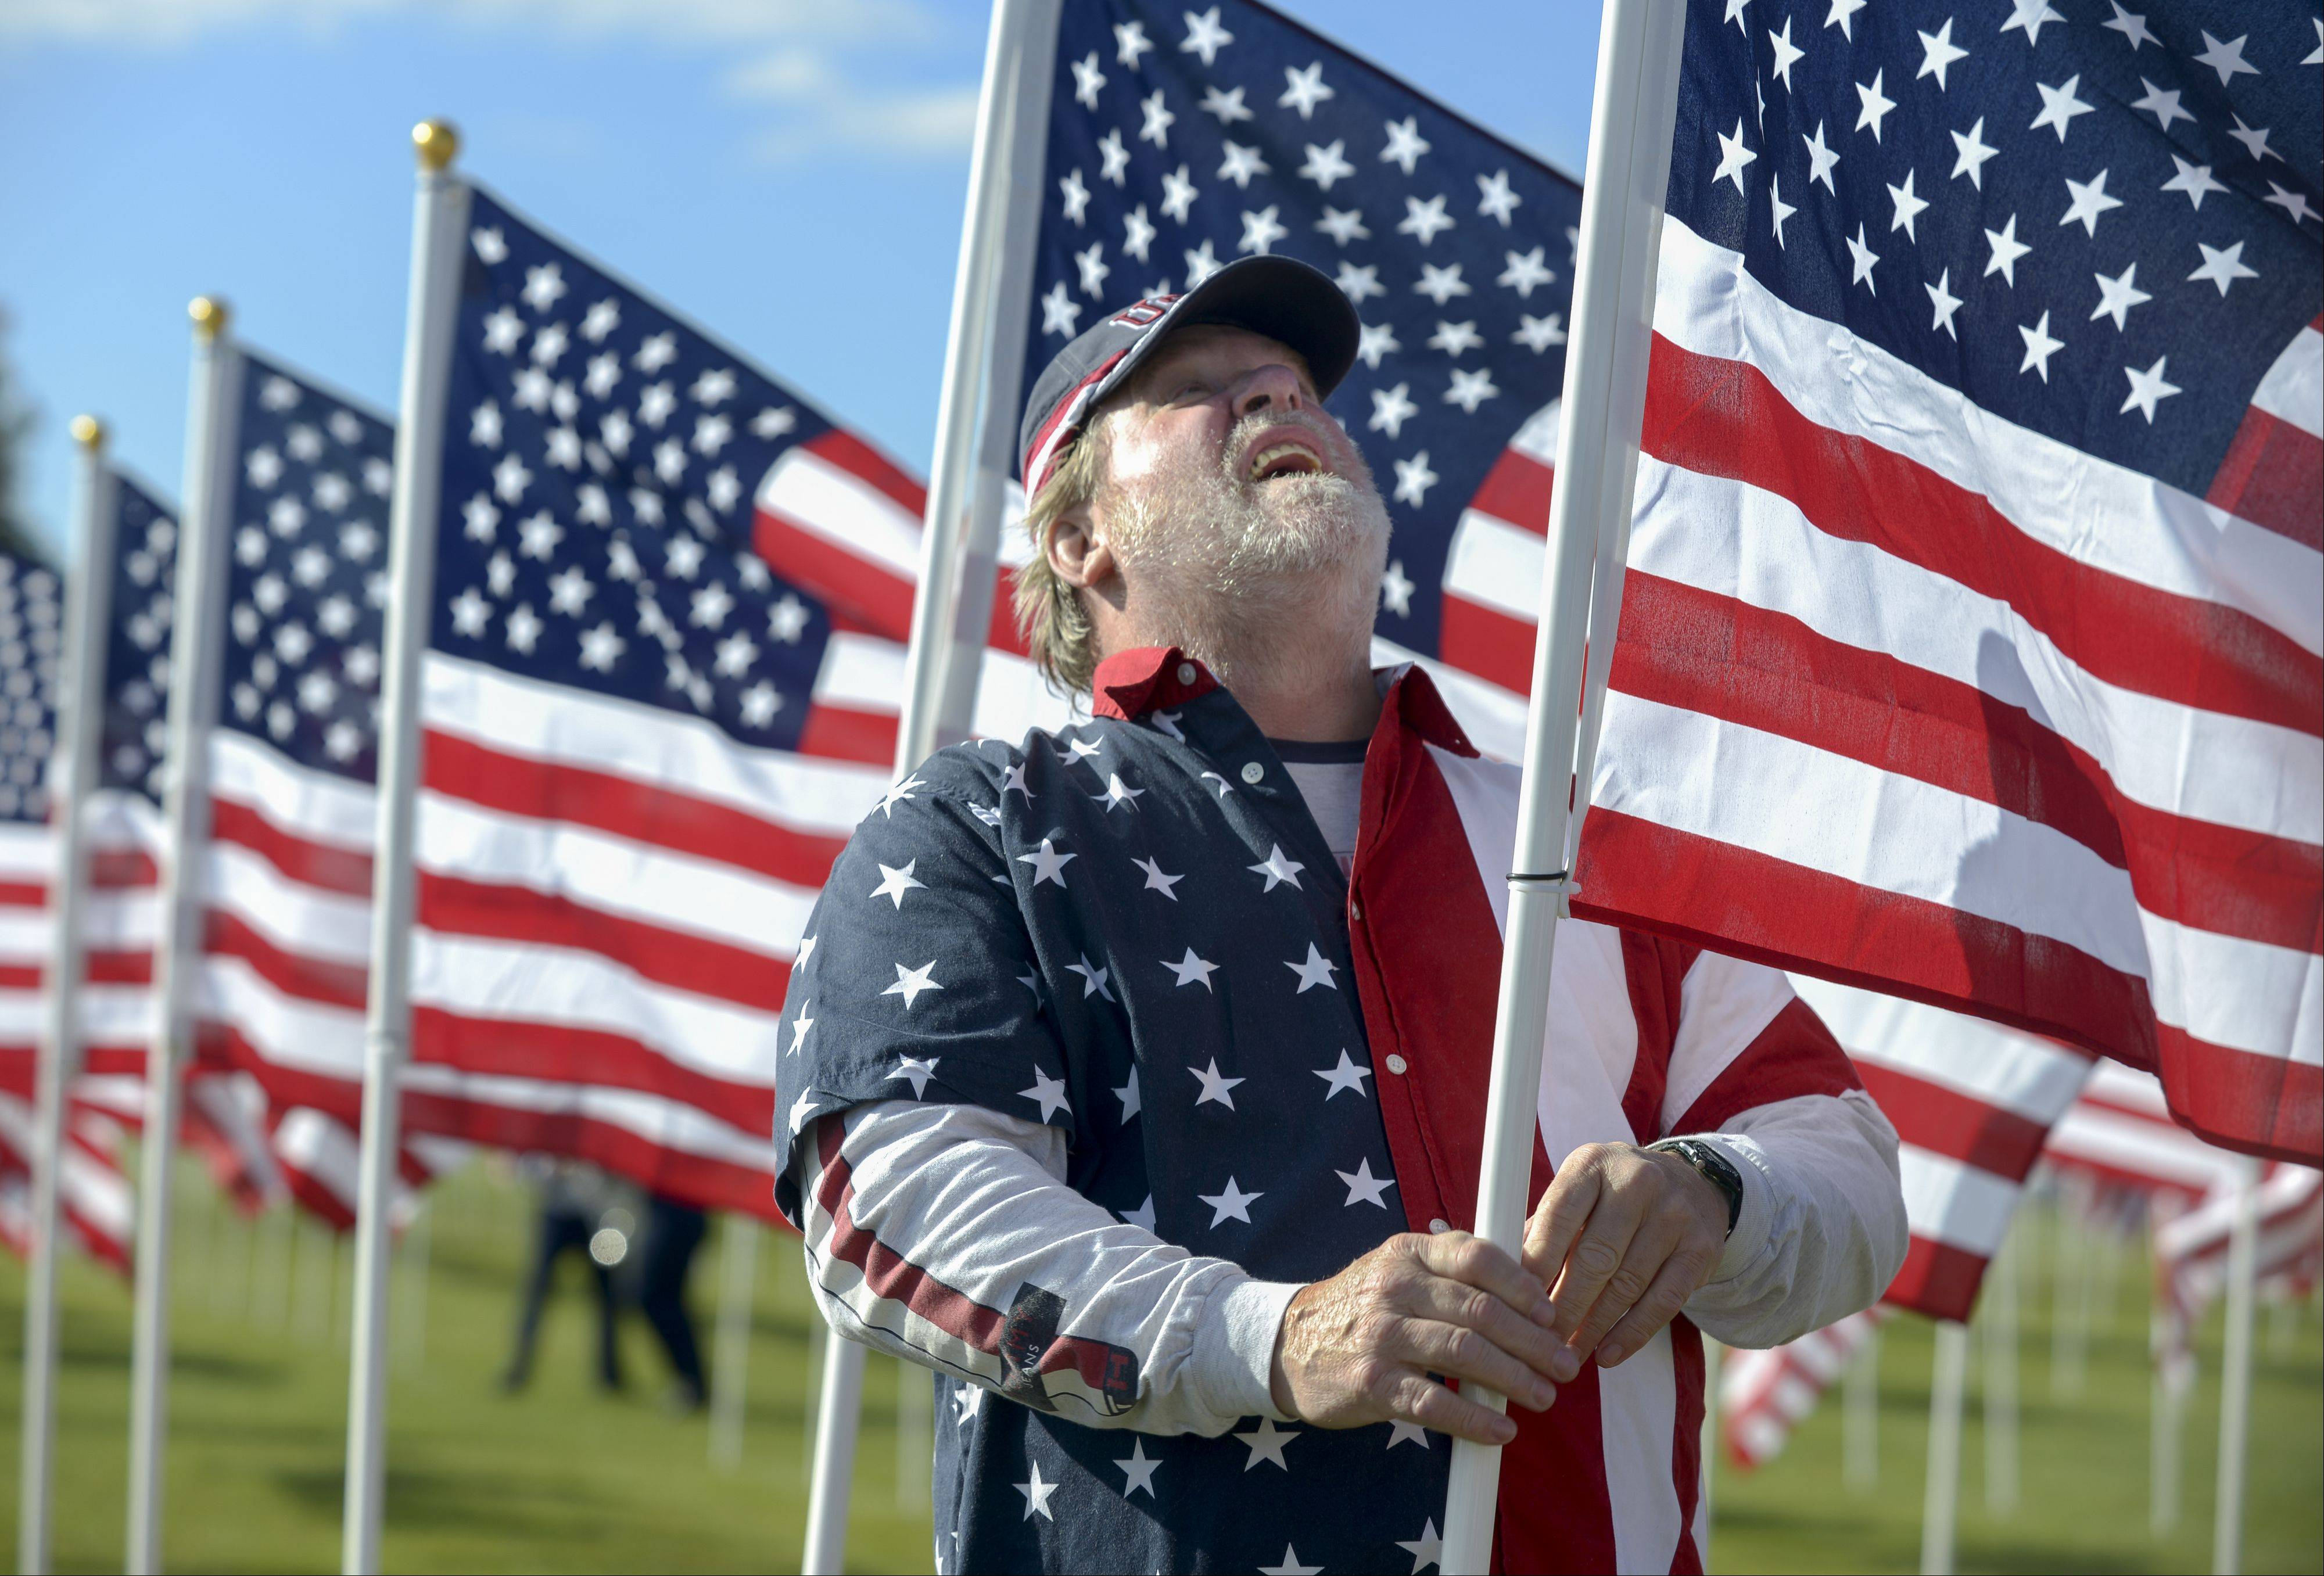 Marine Corp, Vietnam veteran Jake Horn, of Sugar Grove, adjusts one of the over 2,000 American flags on Aurora Healing Field at West Aurora High School Sunday. Horn was part of a group of volunteers who helped install the flags early Sunday morning.